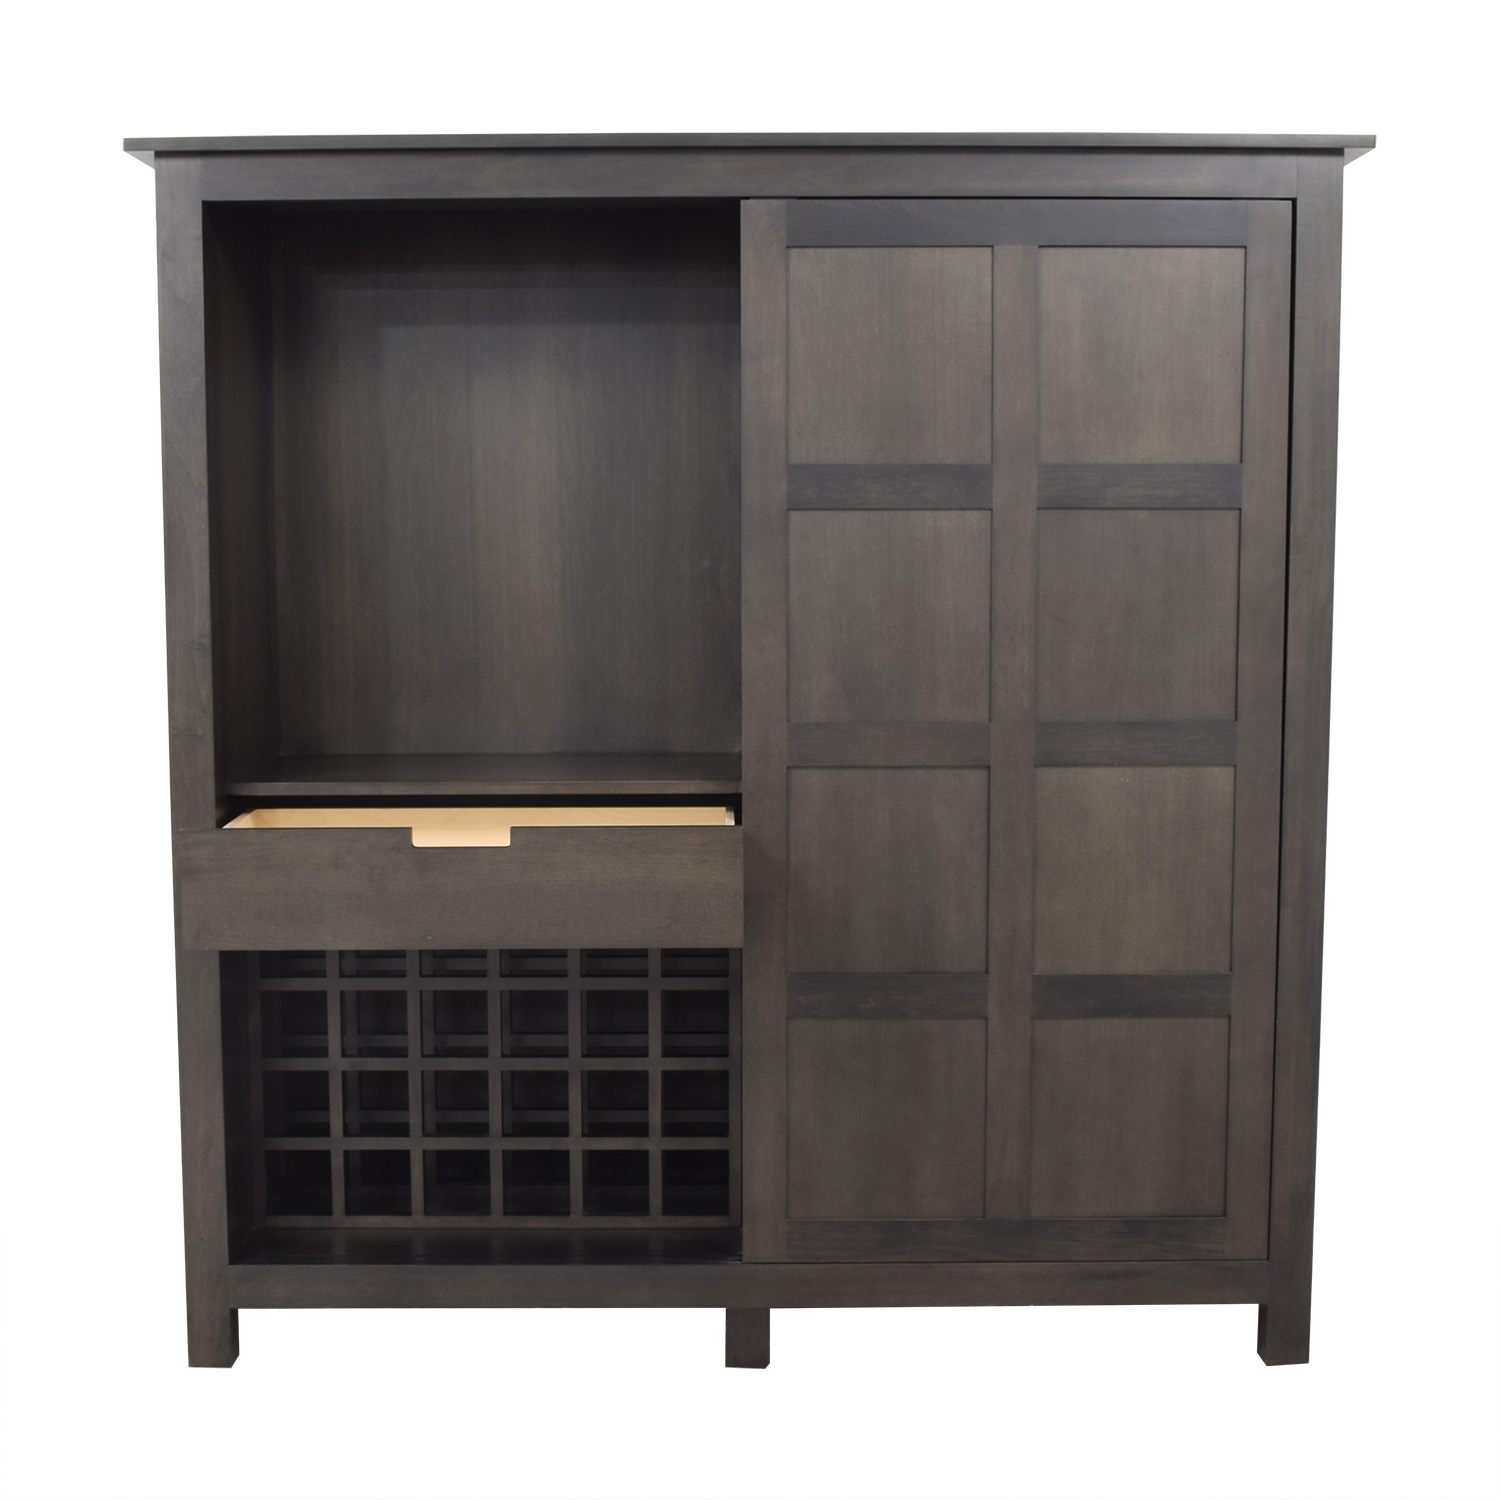 Room & Board Room & Board Bennett Armoire with Wine Rack & Four Drawers dimensions